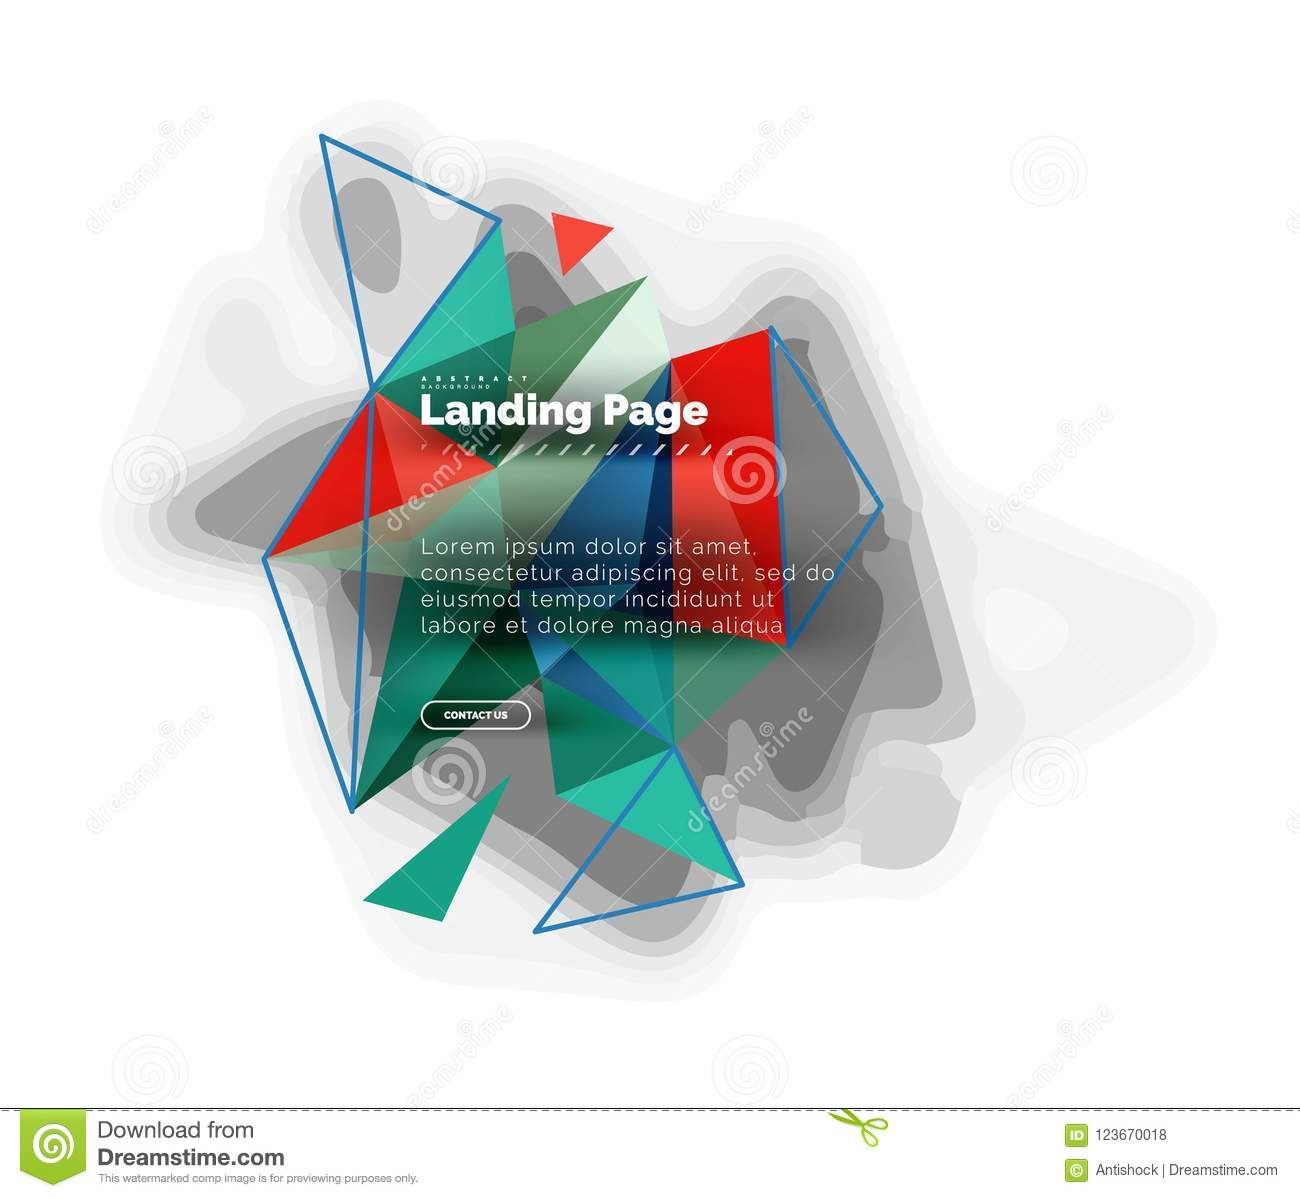 Triangular design abstract background, landing page. Low poly style colorful triangles on white